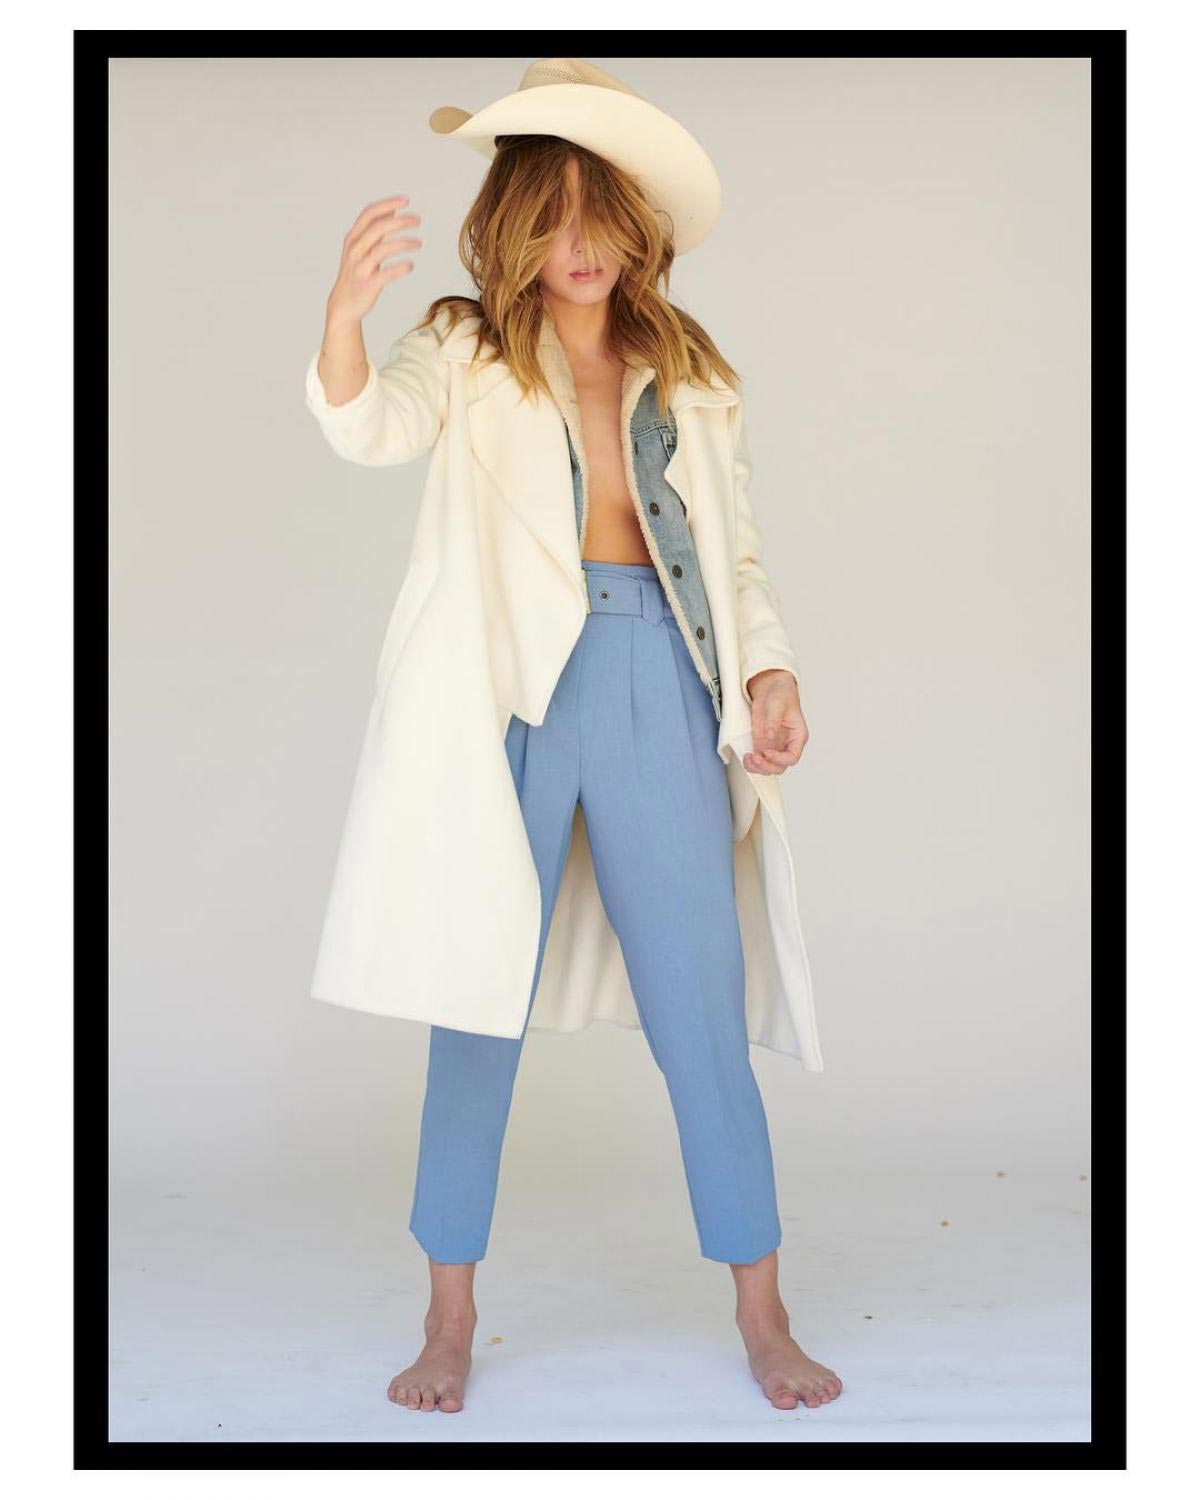 Chloe Bennet on the Set of a Photoshoot, October 2018 1